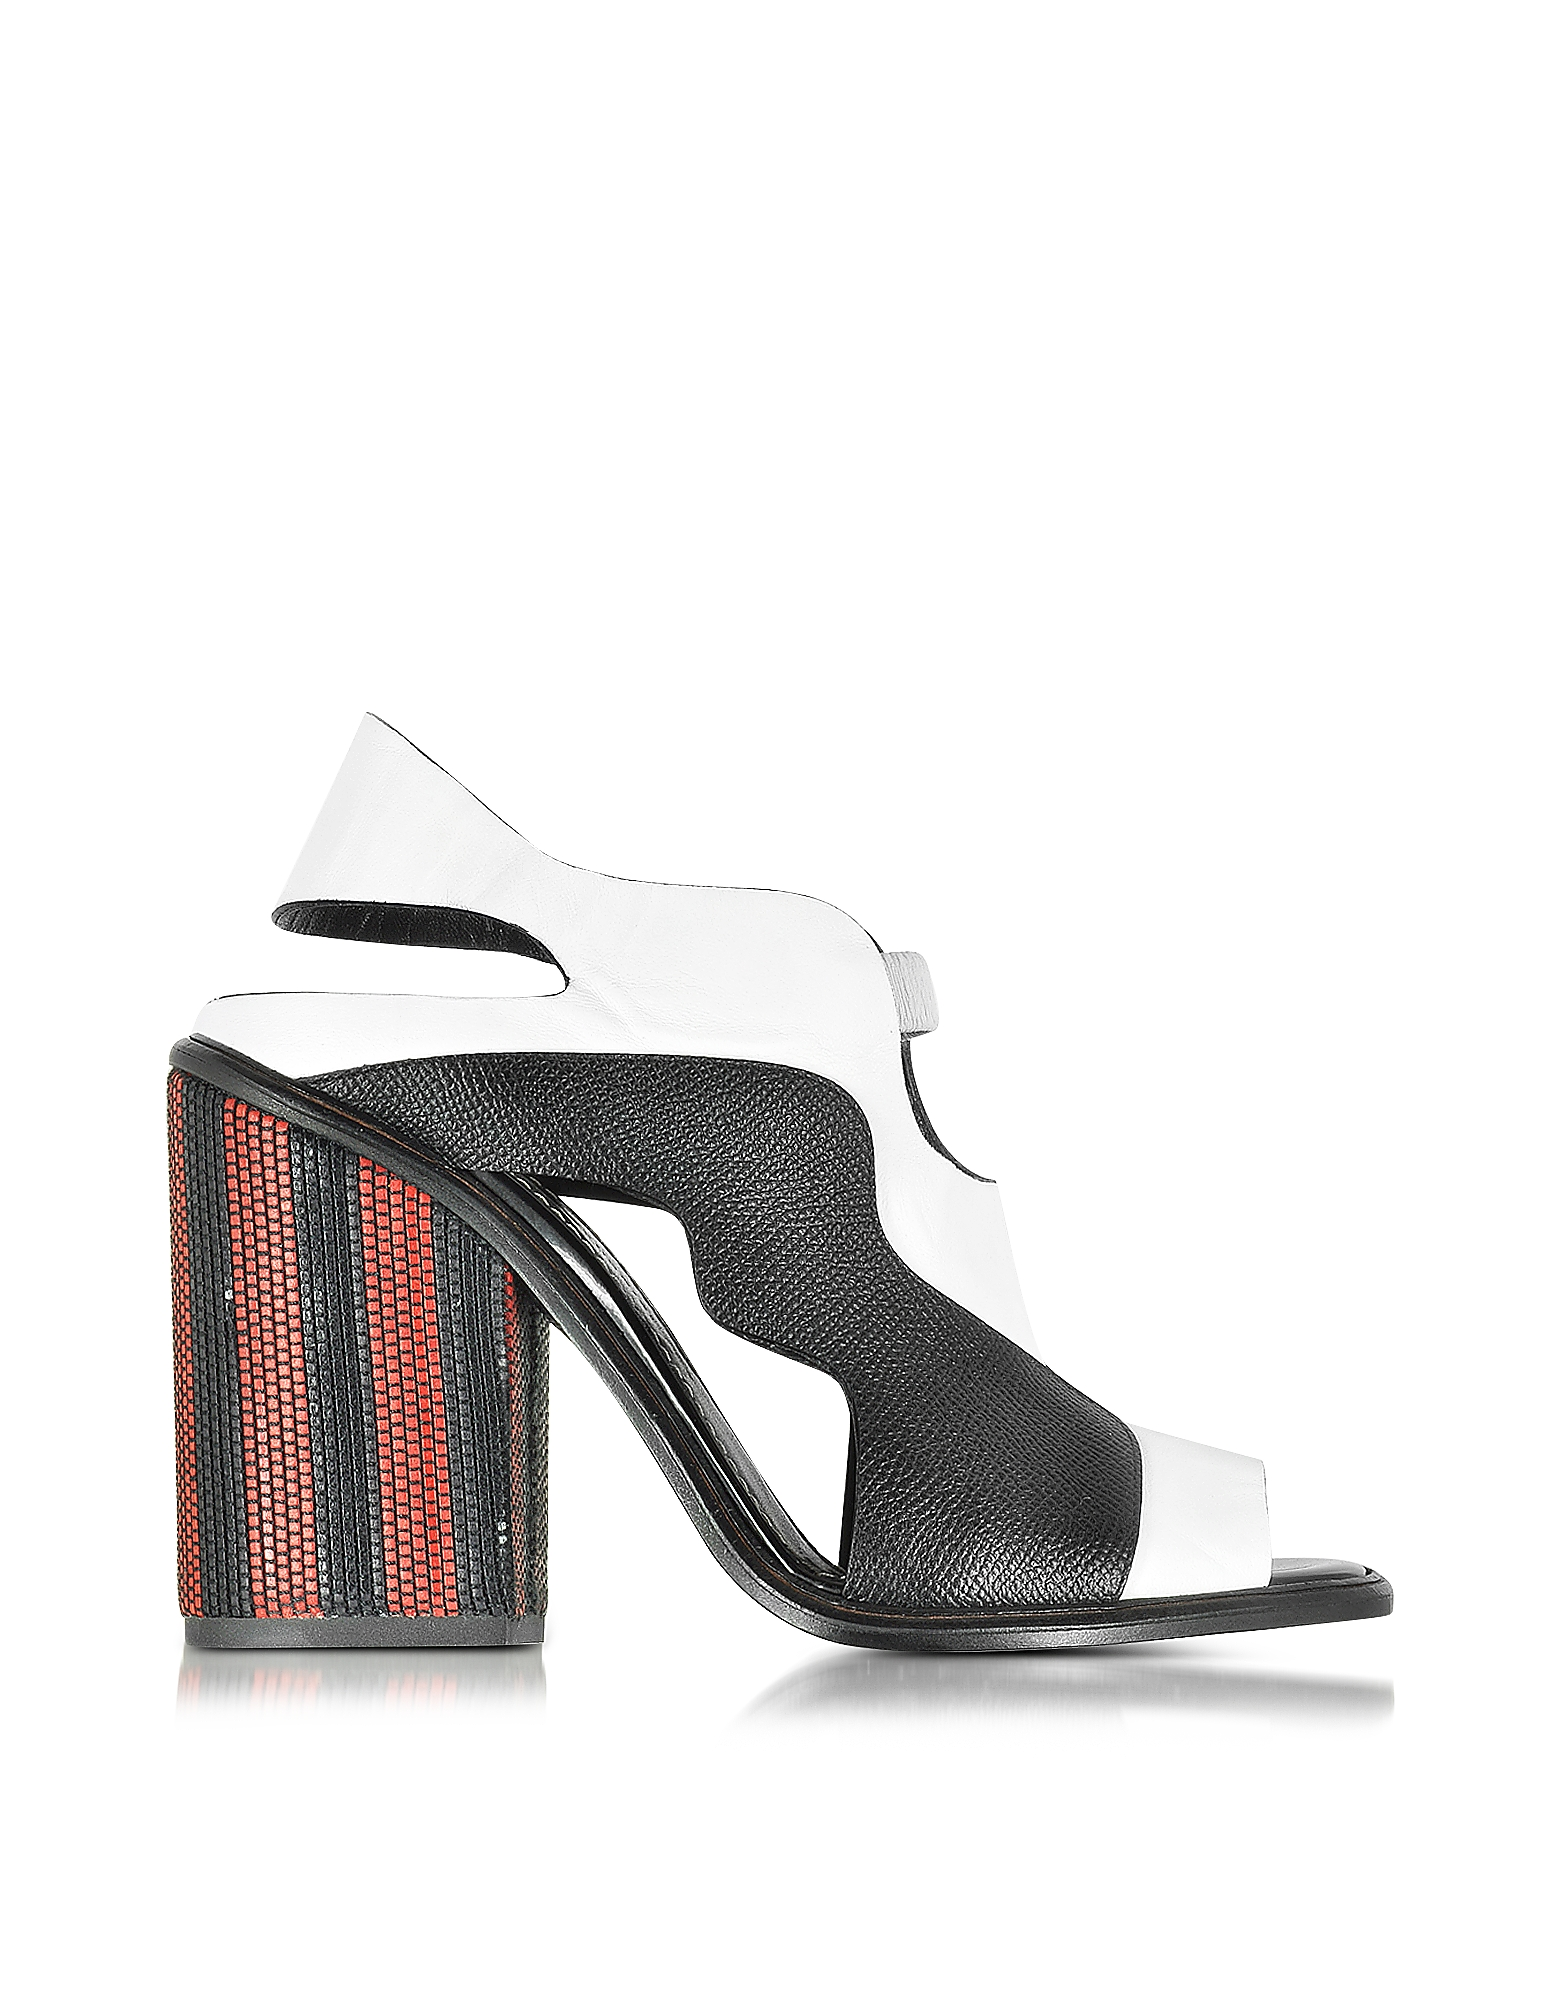 Proenza Schouler Shoes, Color Block High Heel Sandal